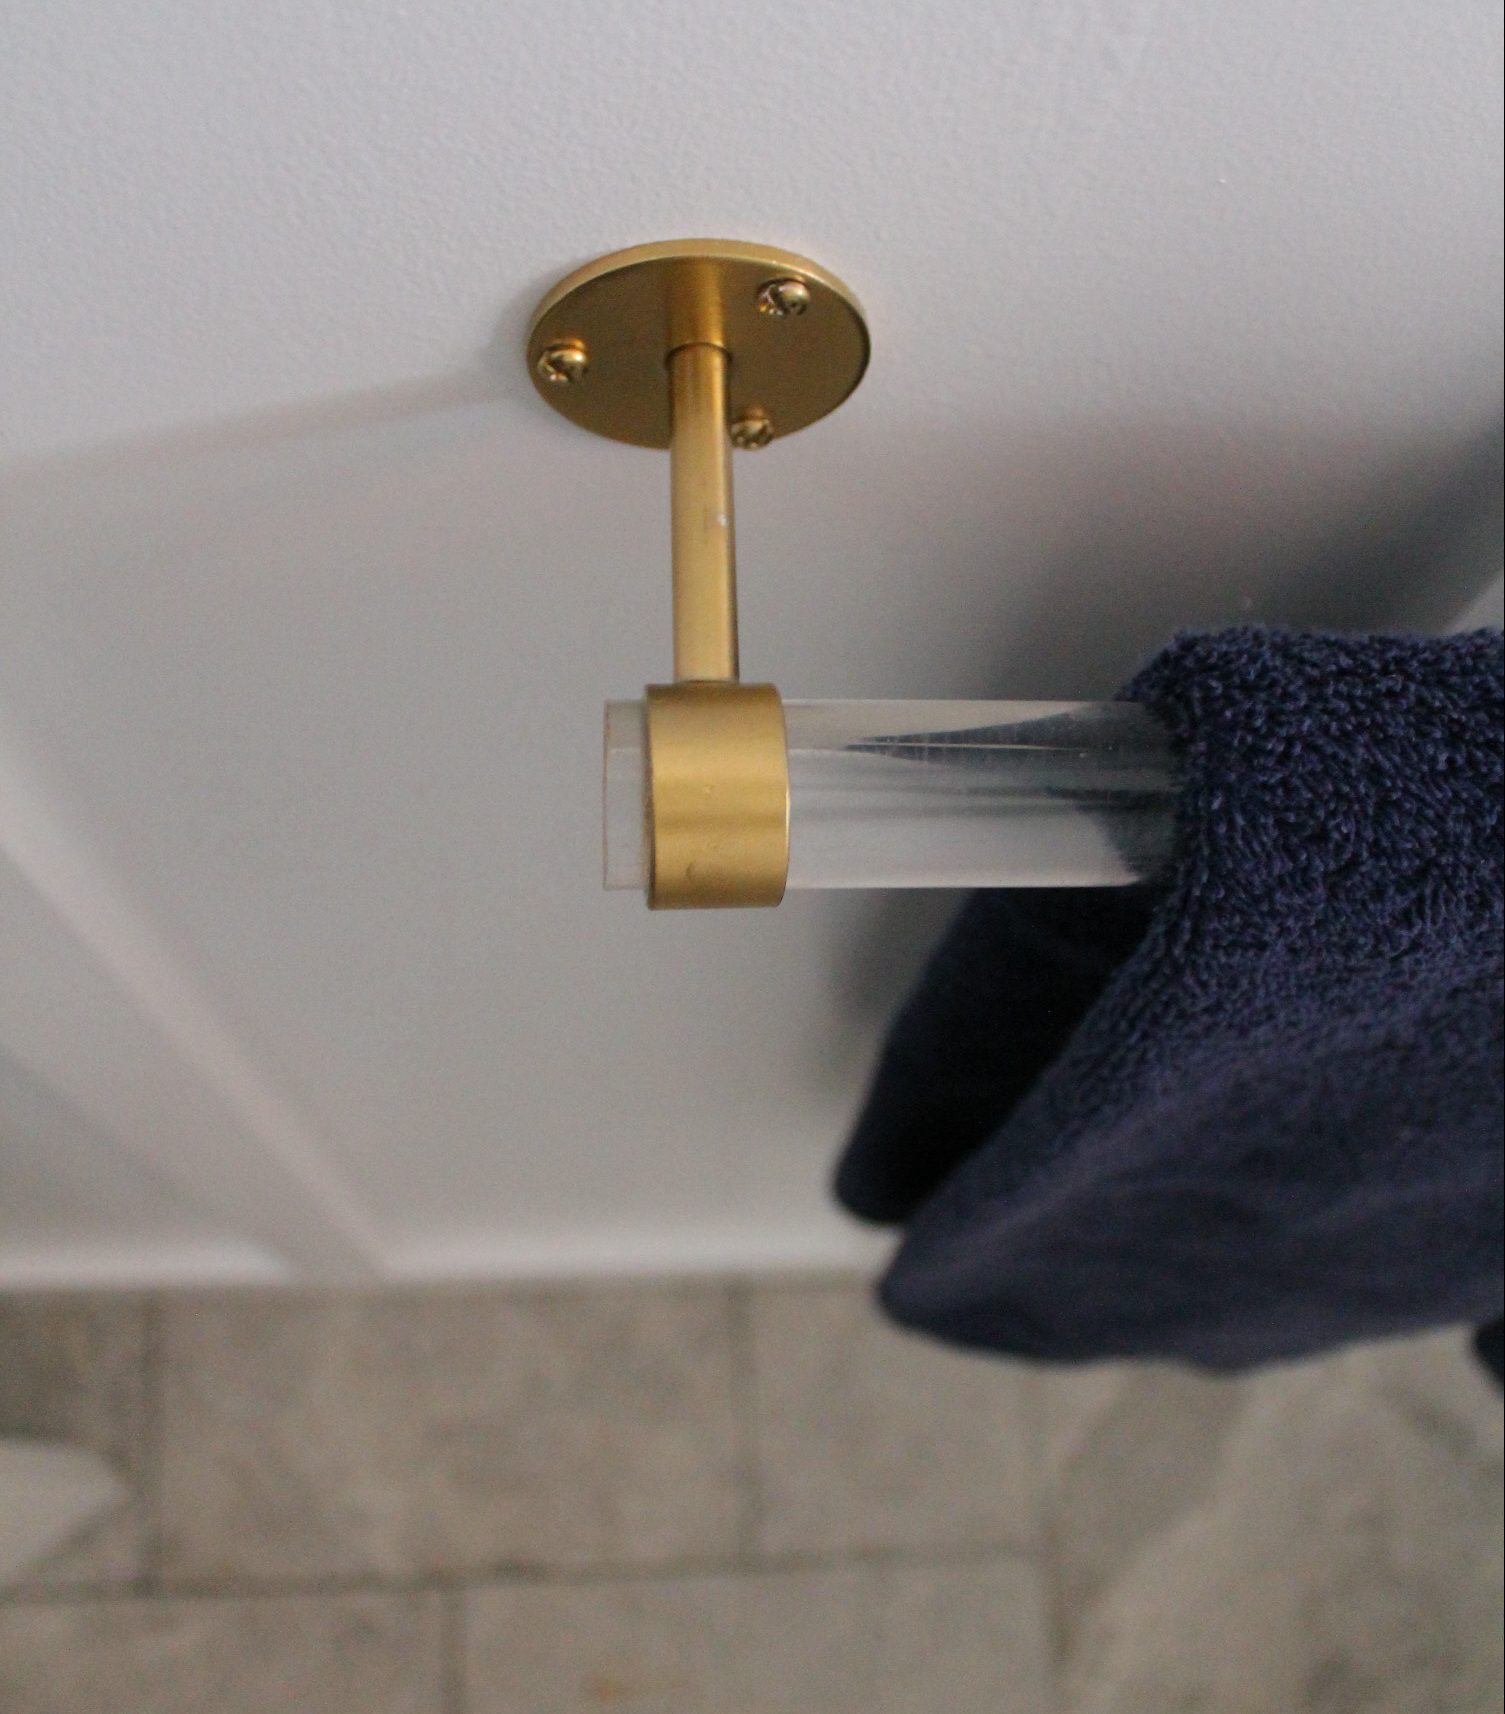 The Hunted & Gathered Towel Bar DIY